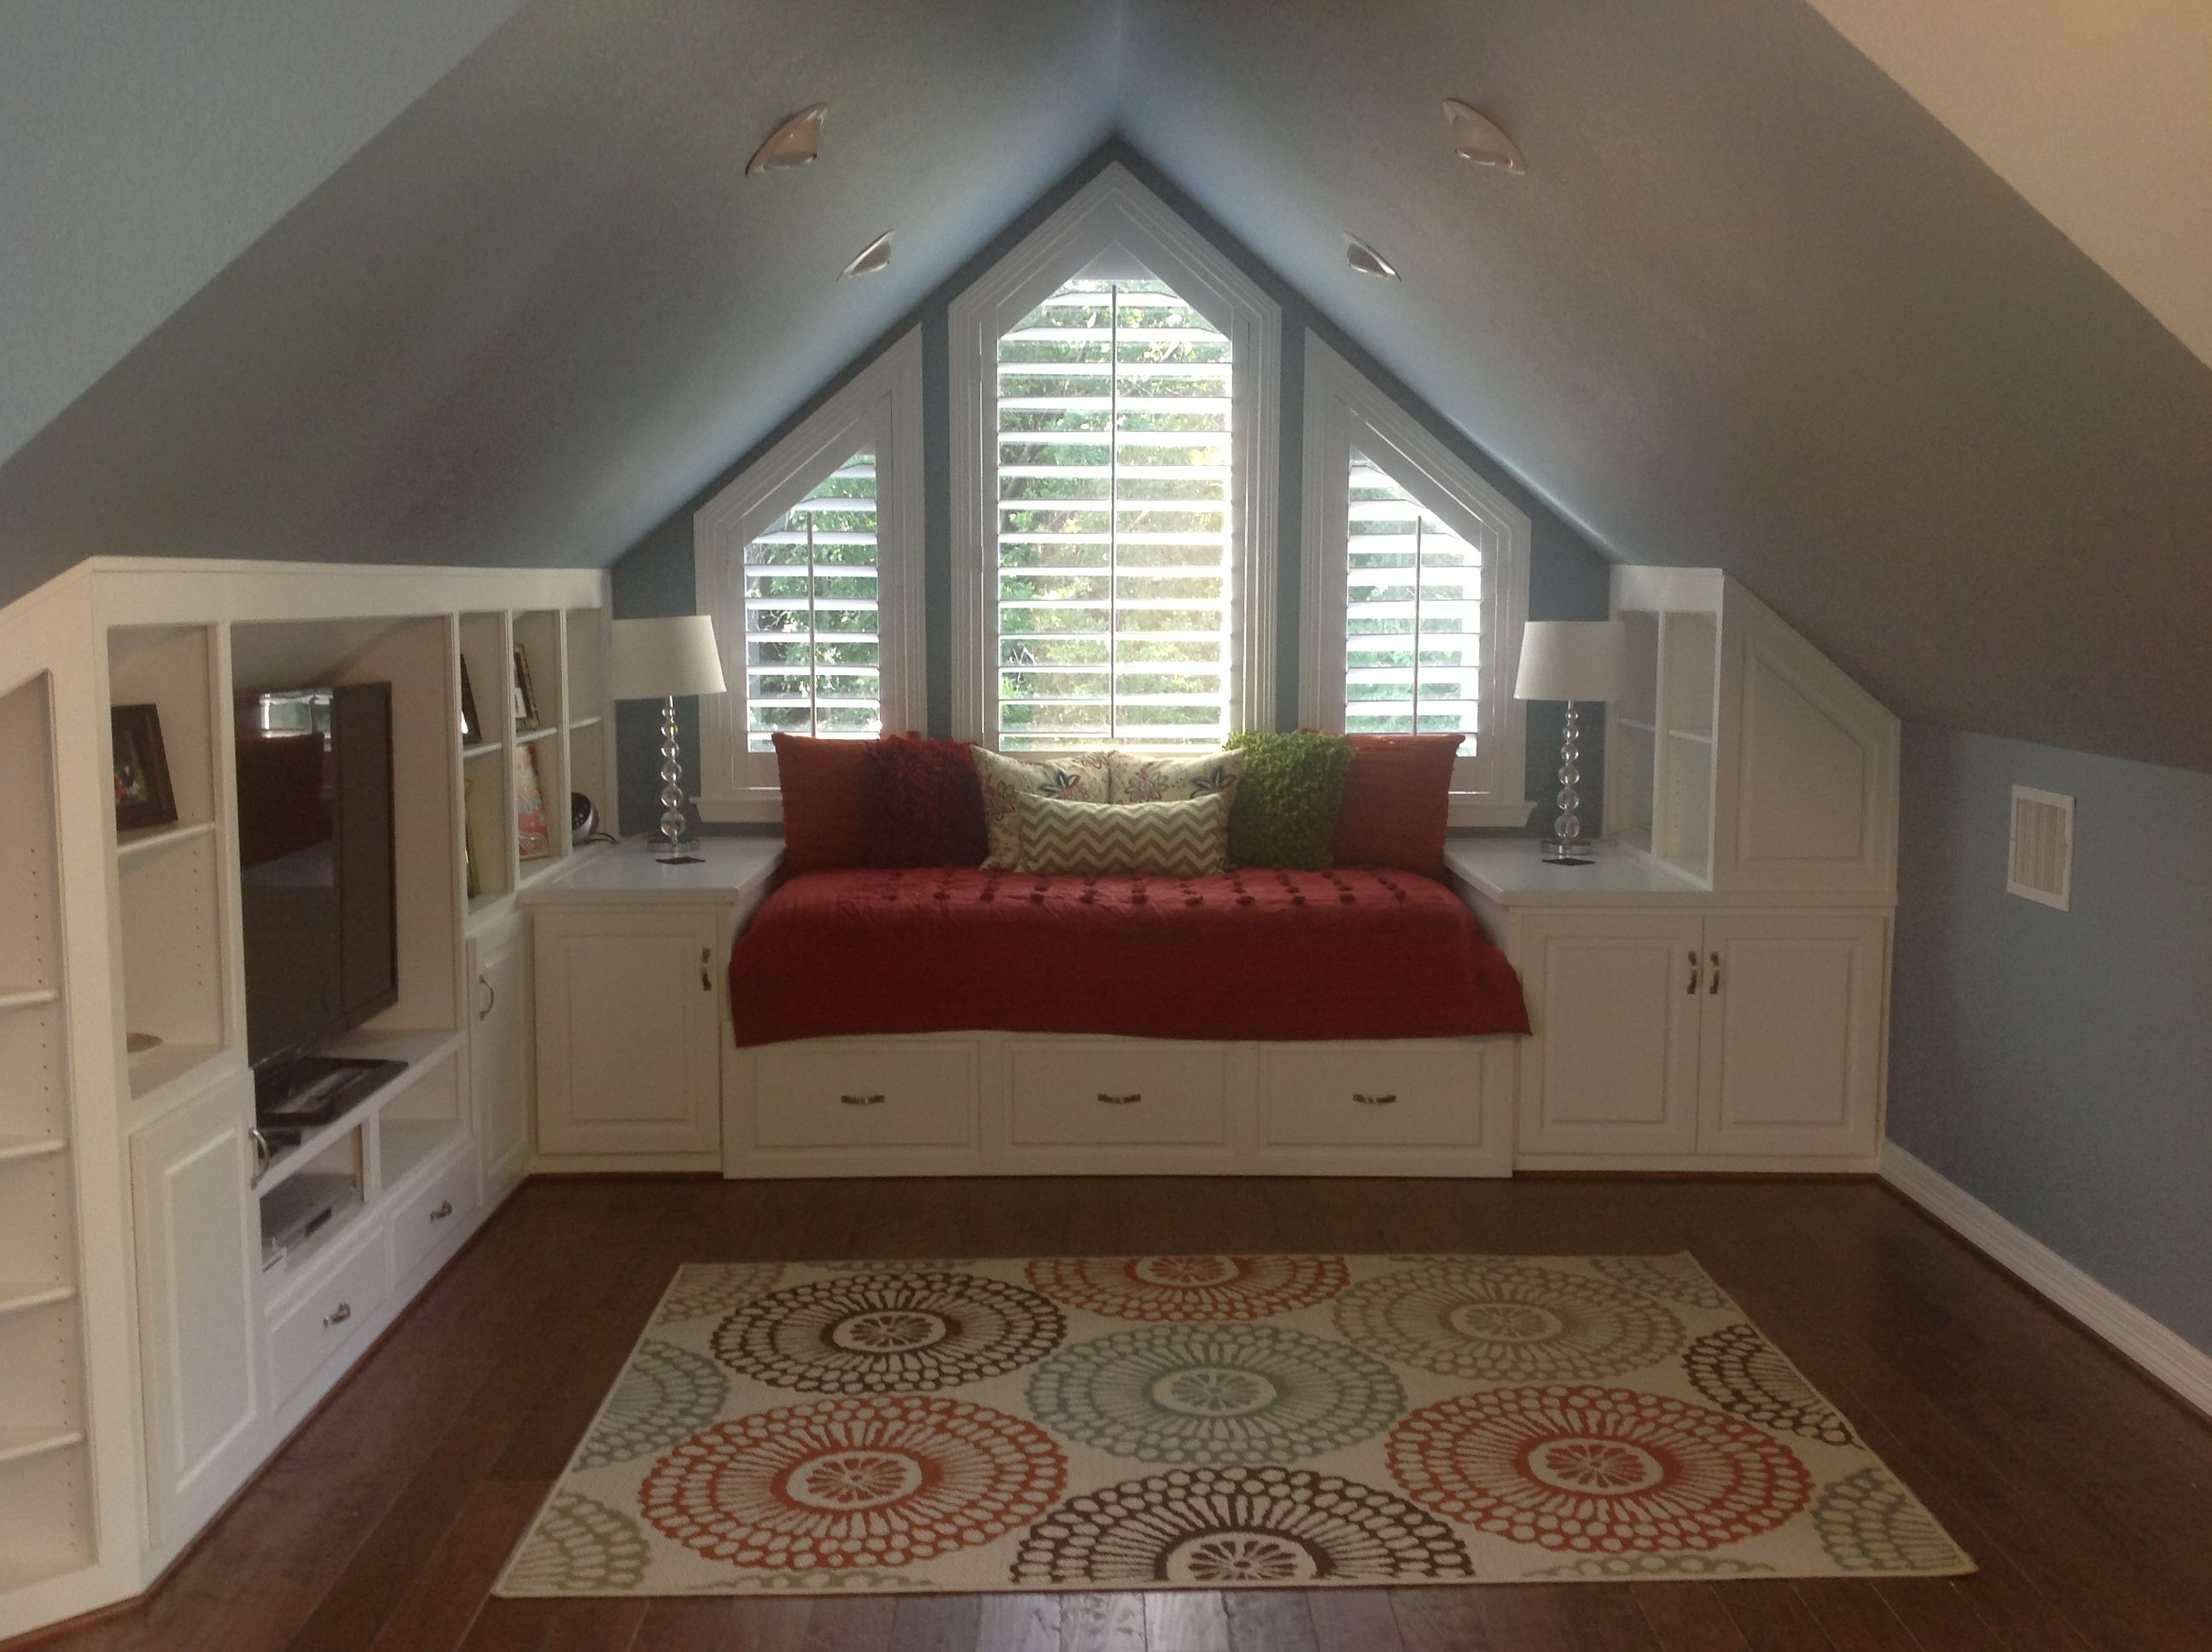 Making a playroom in your attic upstairs bedroomattic bedroomsattic